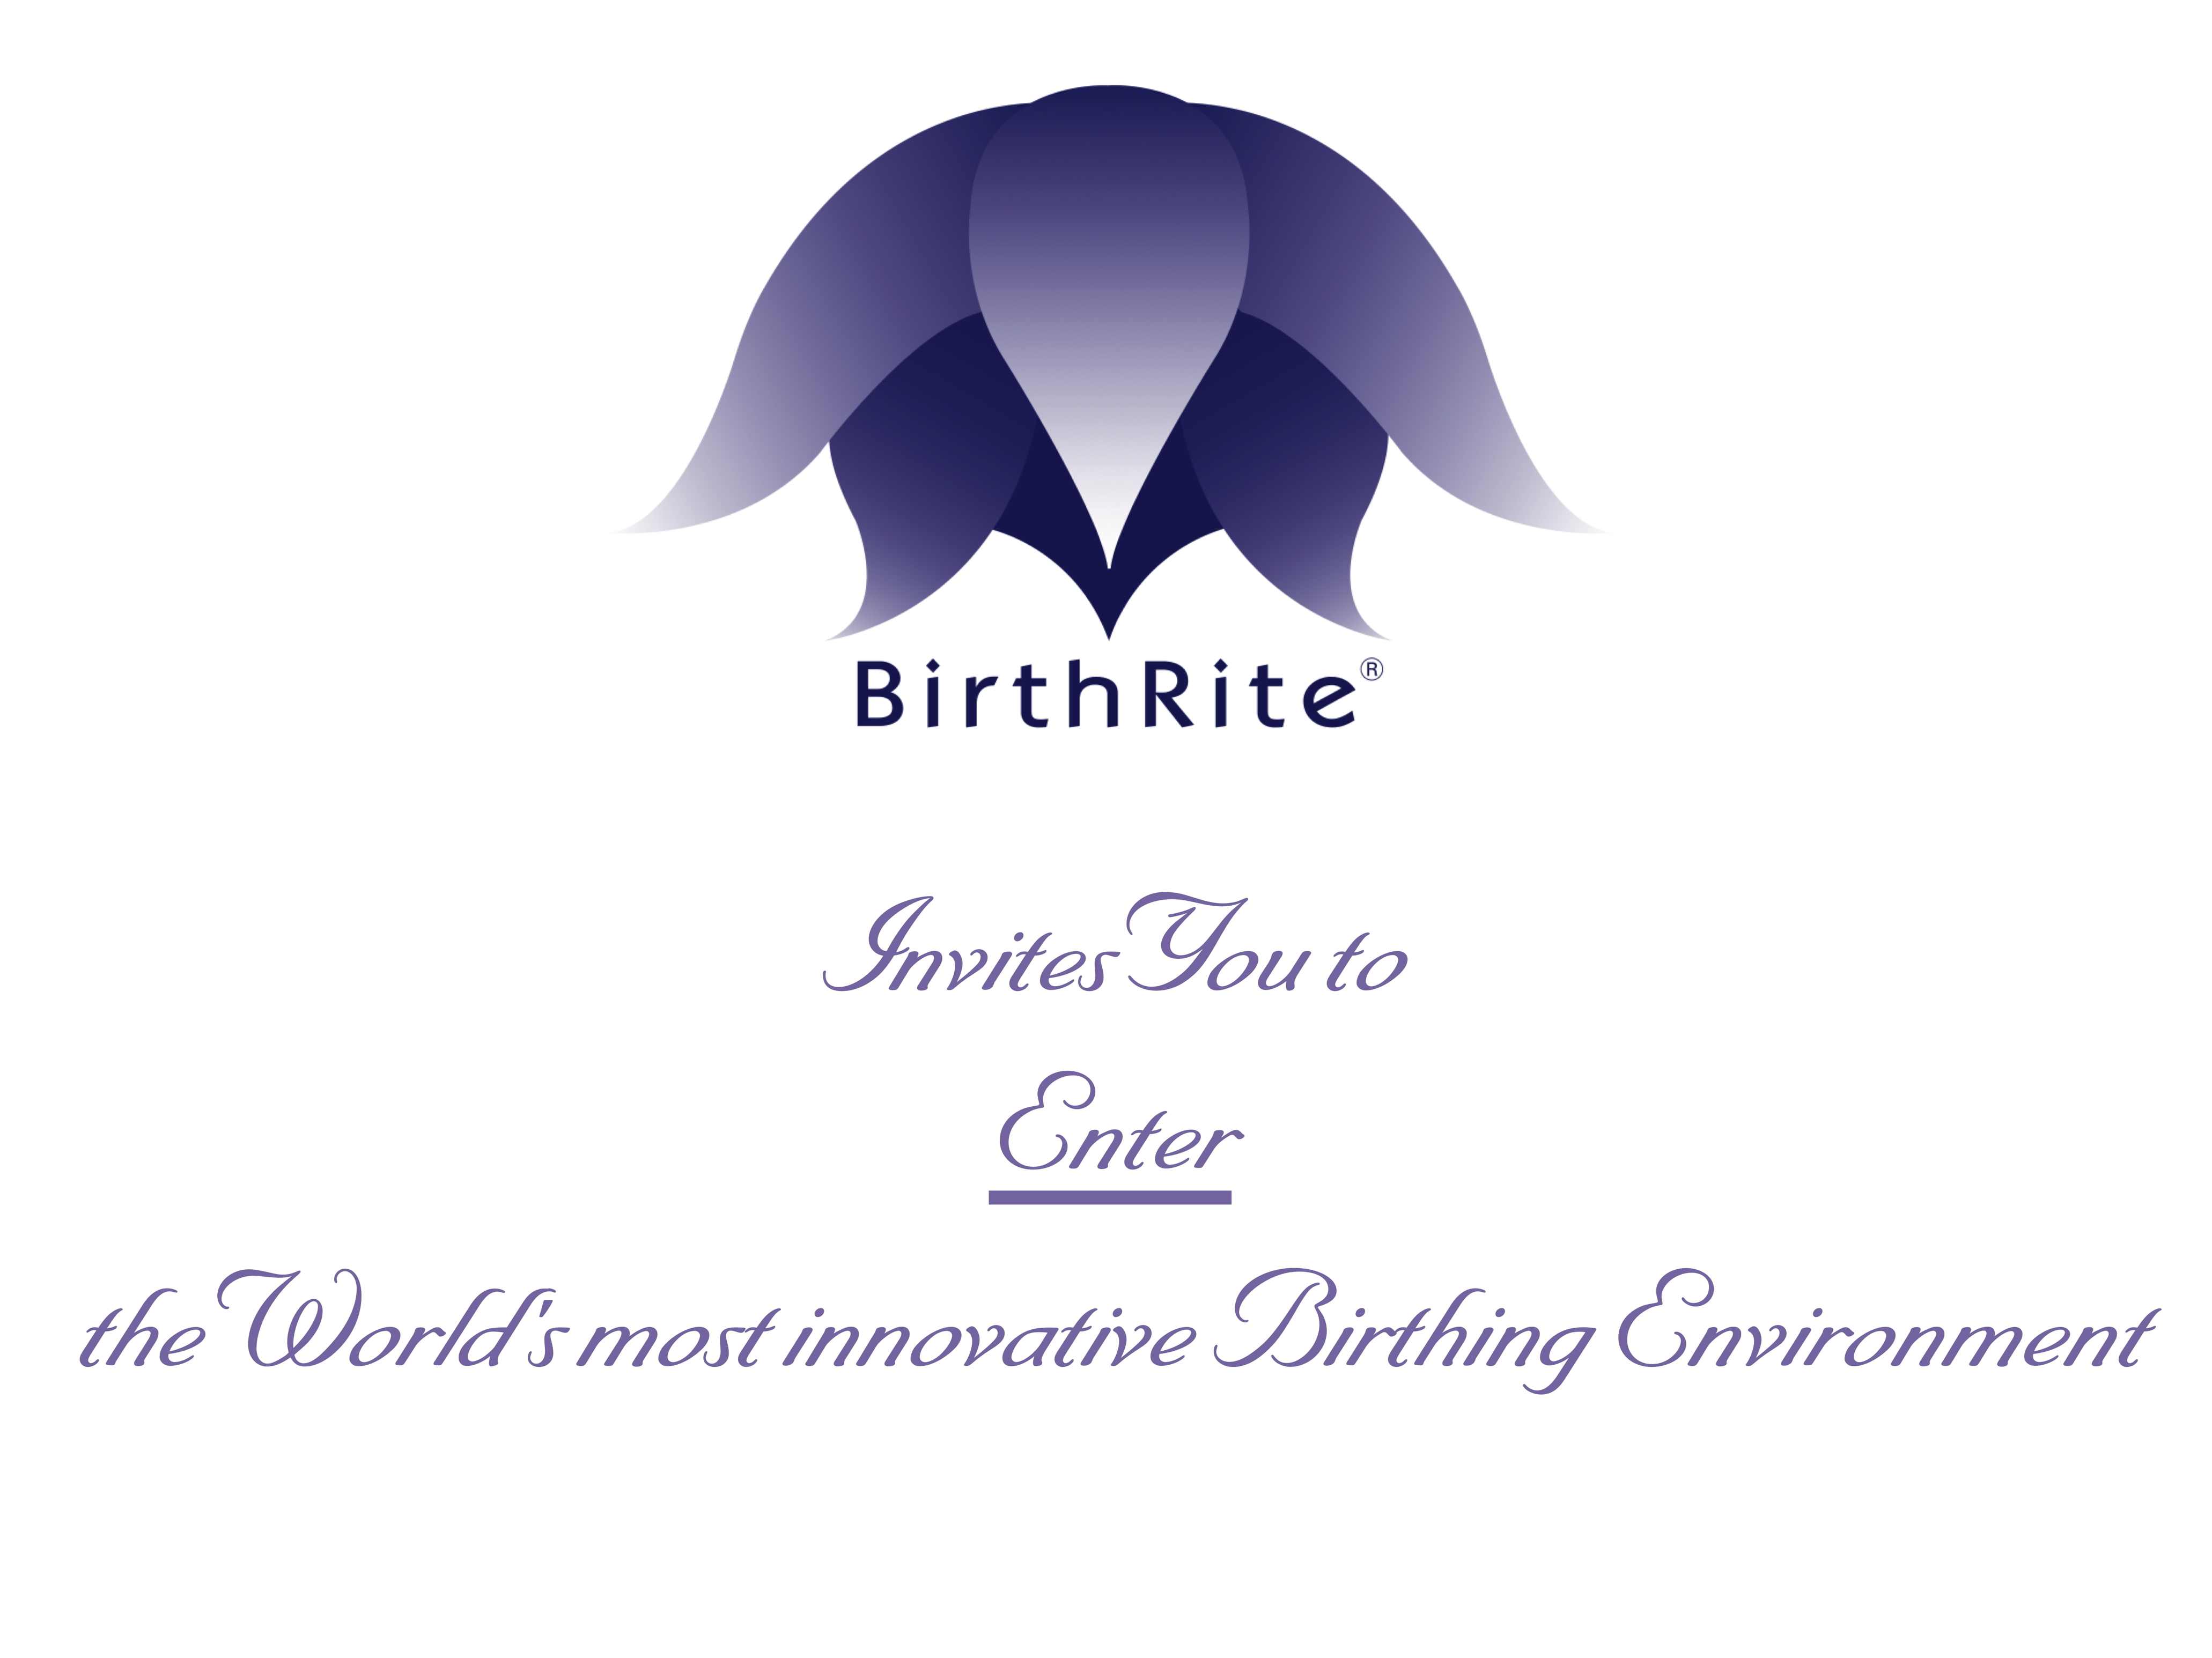 BirthRite logo and invitation to enter the world's most innovative birthing environment